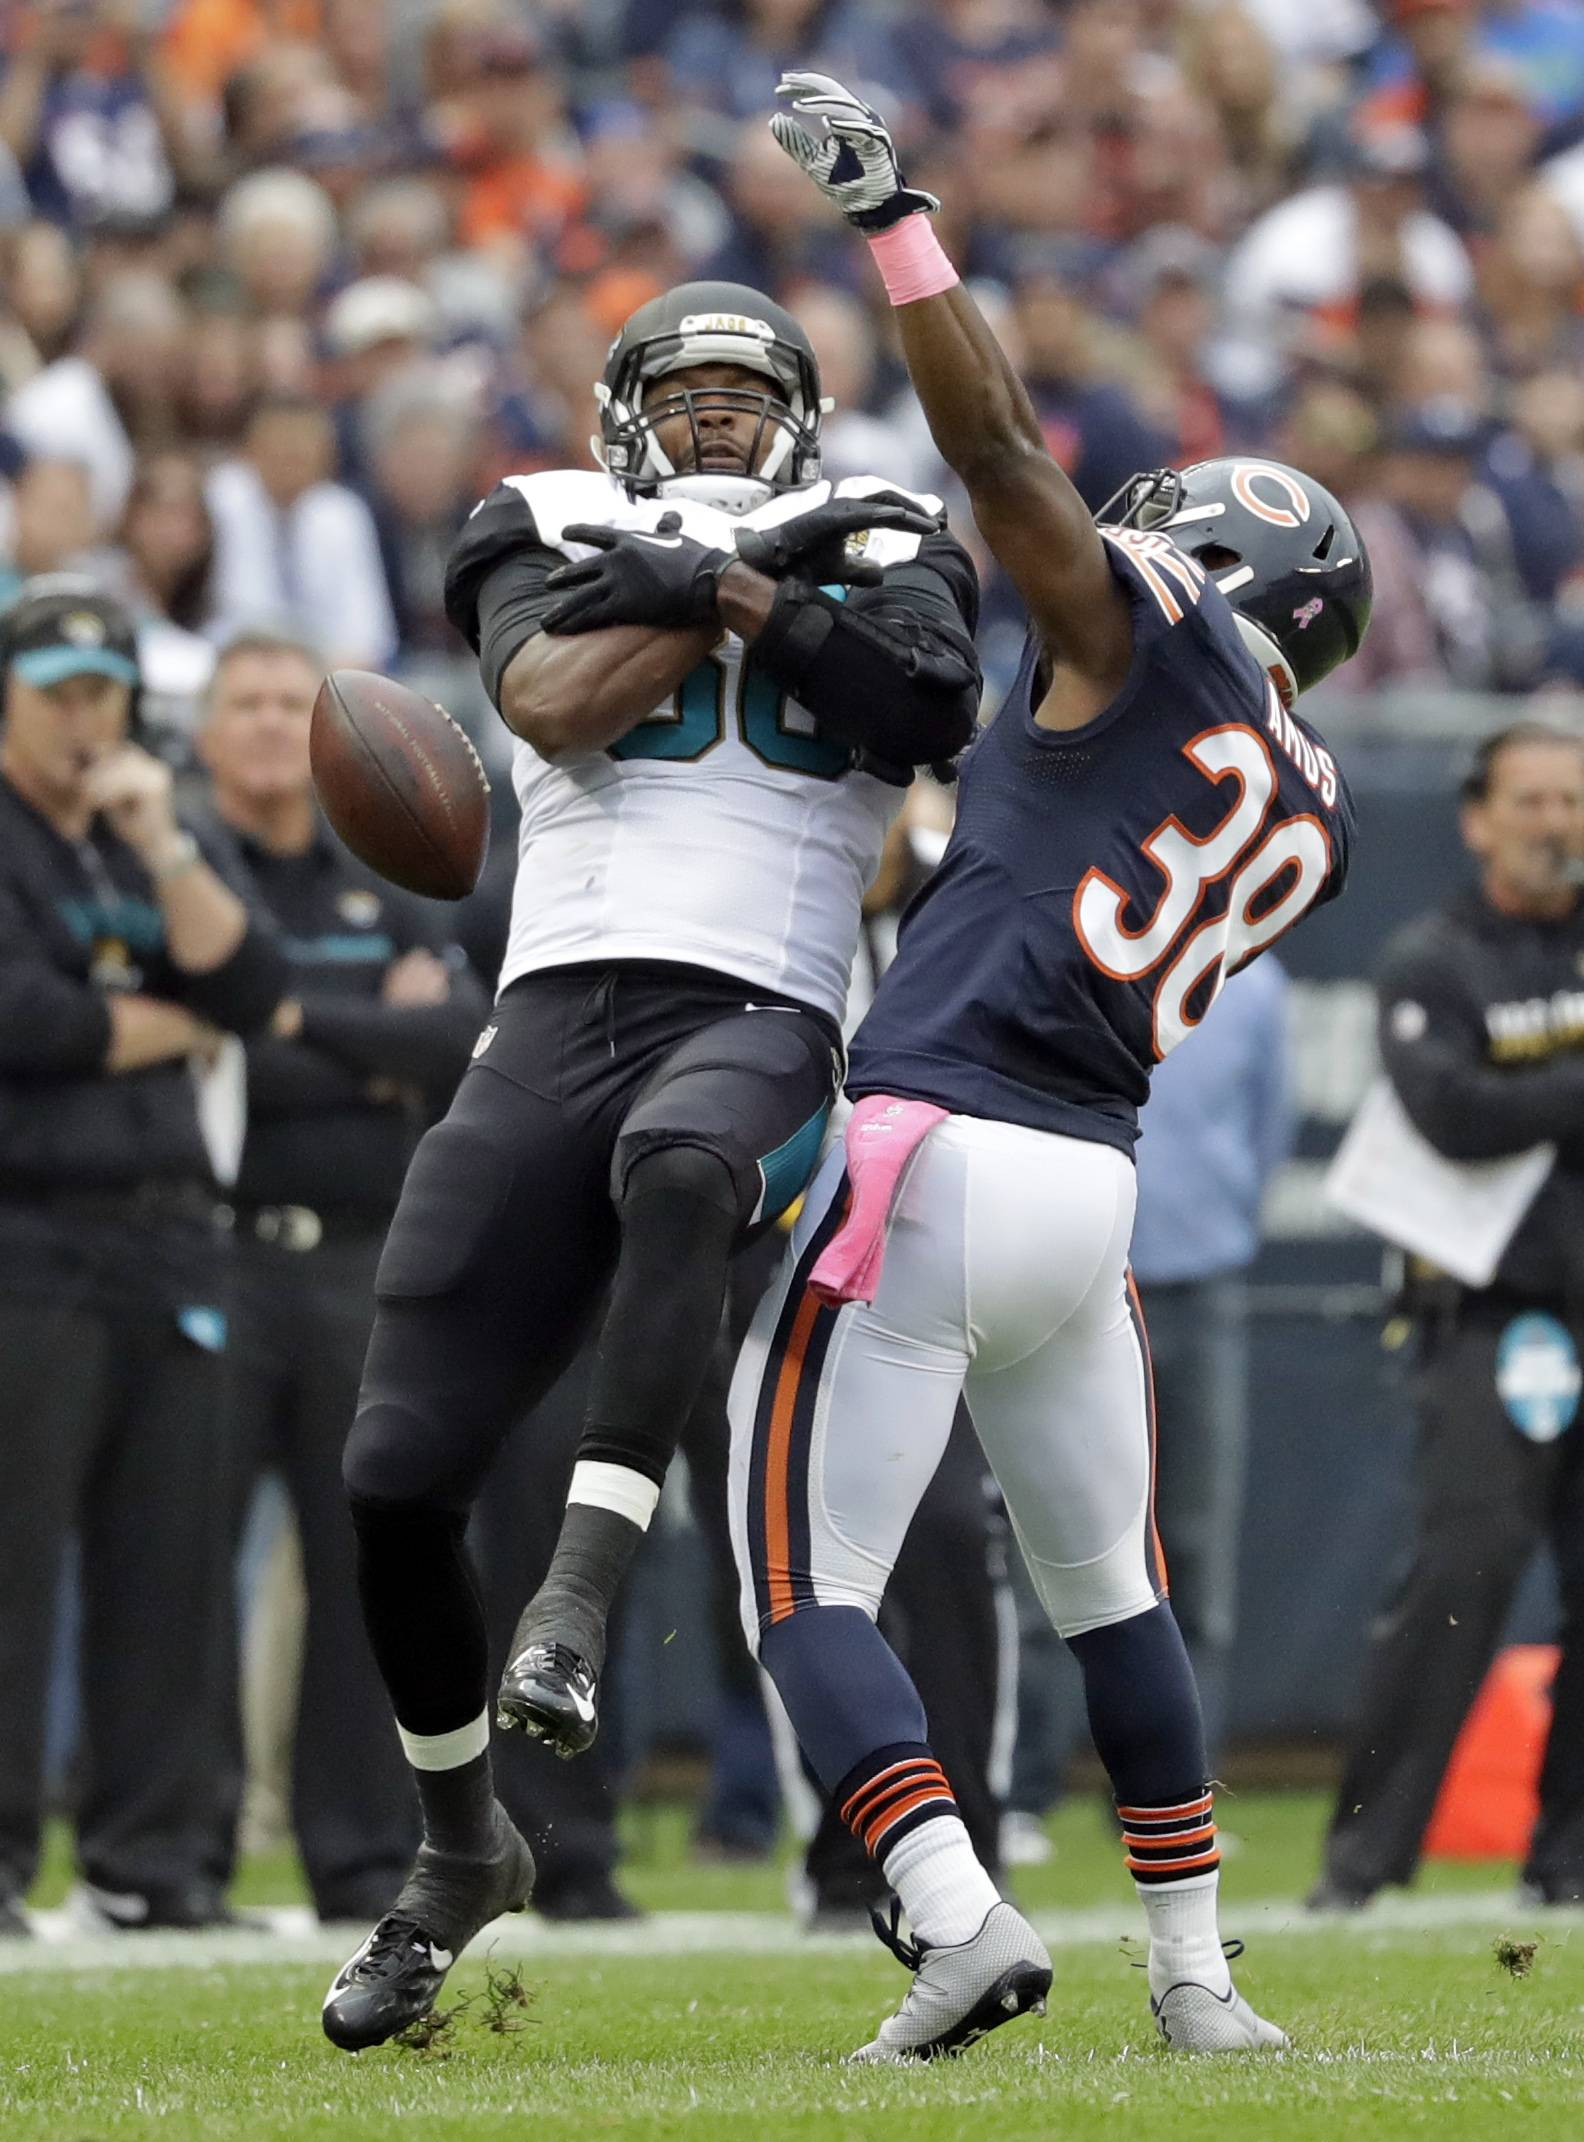 Chicago Bears free safety Adrian Amos (38) breaks up a pass intended for Jacksonville Jaguars tight end Julius Thomas (80) during the first half of an NFL football game in Chicago, Sunday, Oct. 16, 2016.